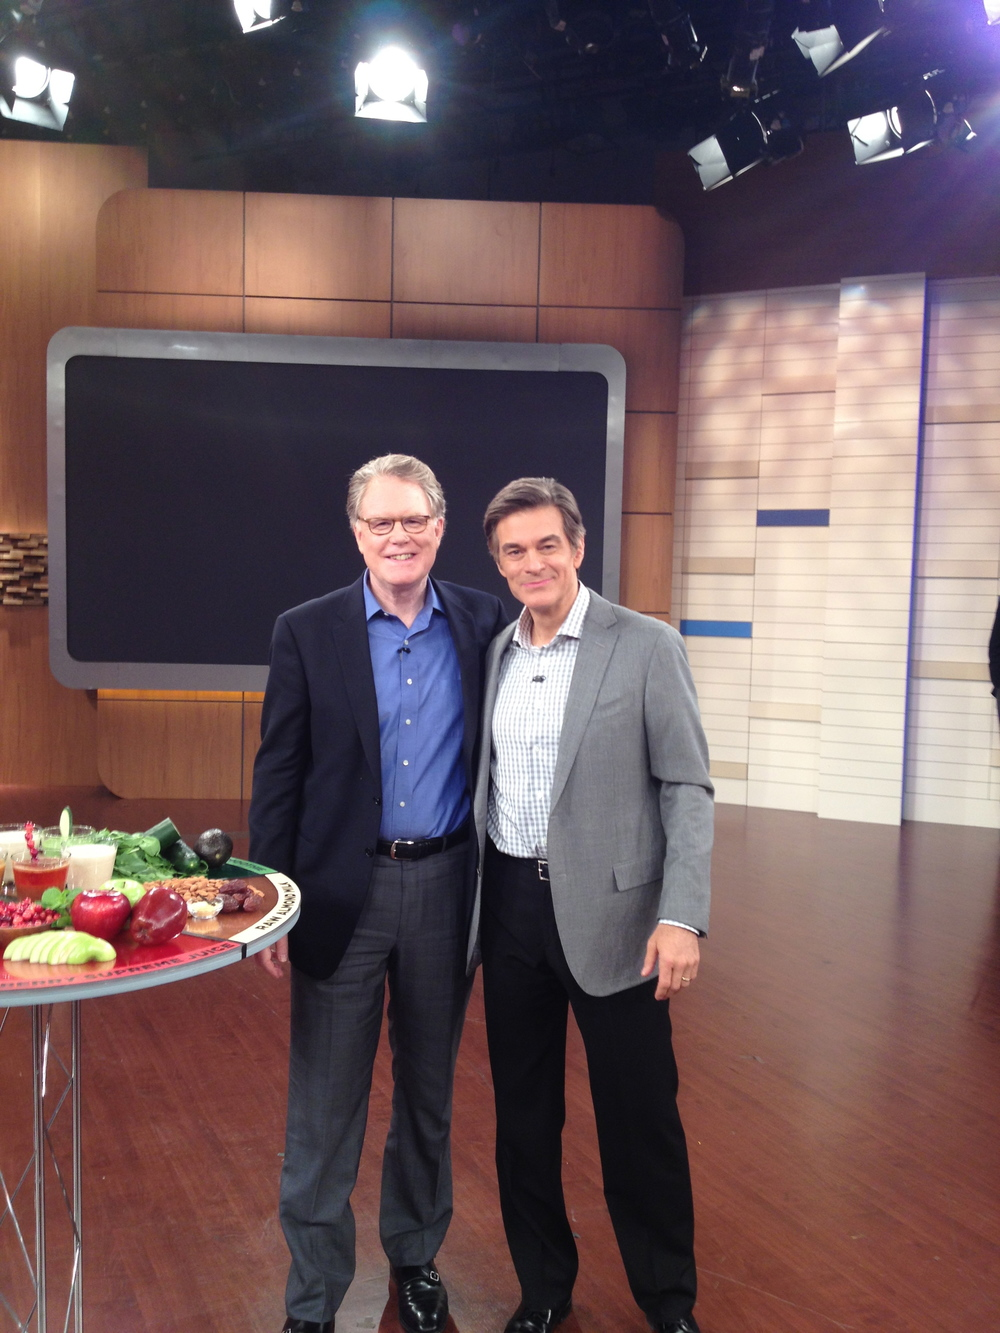 Watch Dr. Merrell discussing the 3-day juice cleanse from  The Detox Prescription  on  The Dr. Oz Show :  Part I  and  Part II .